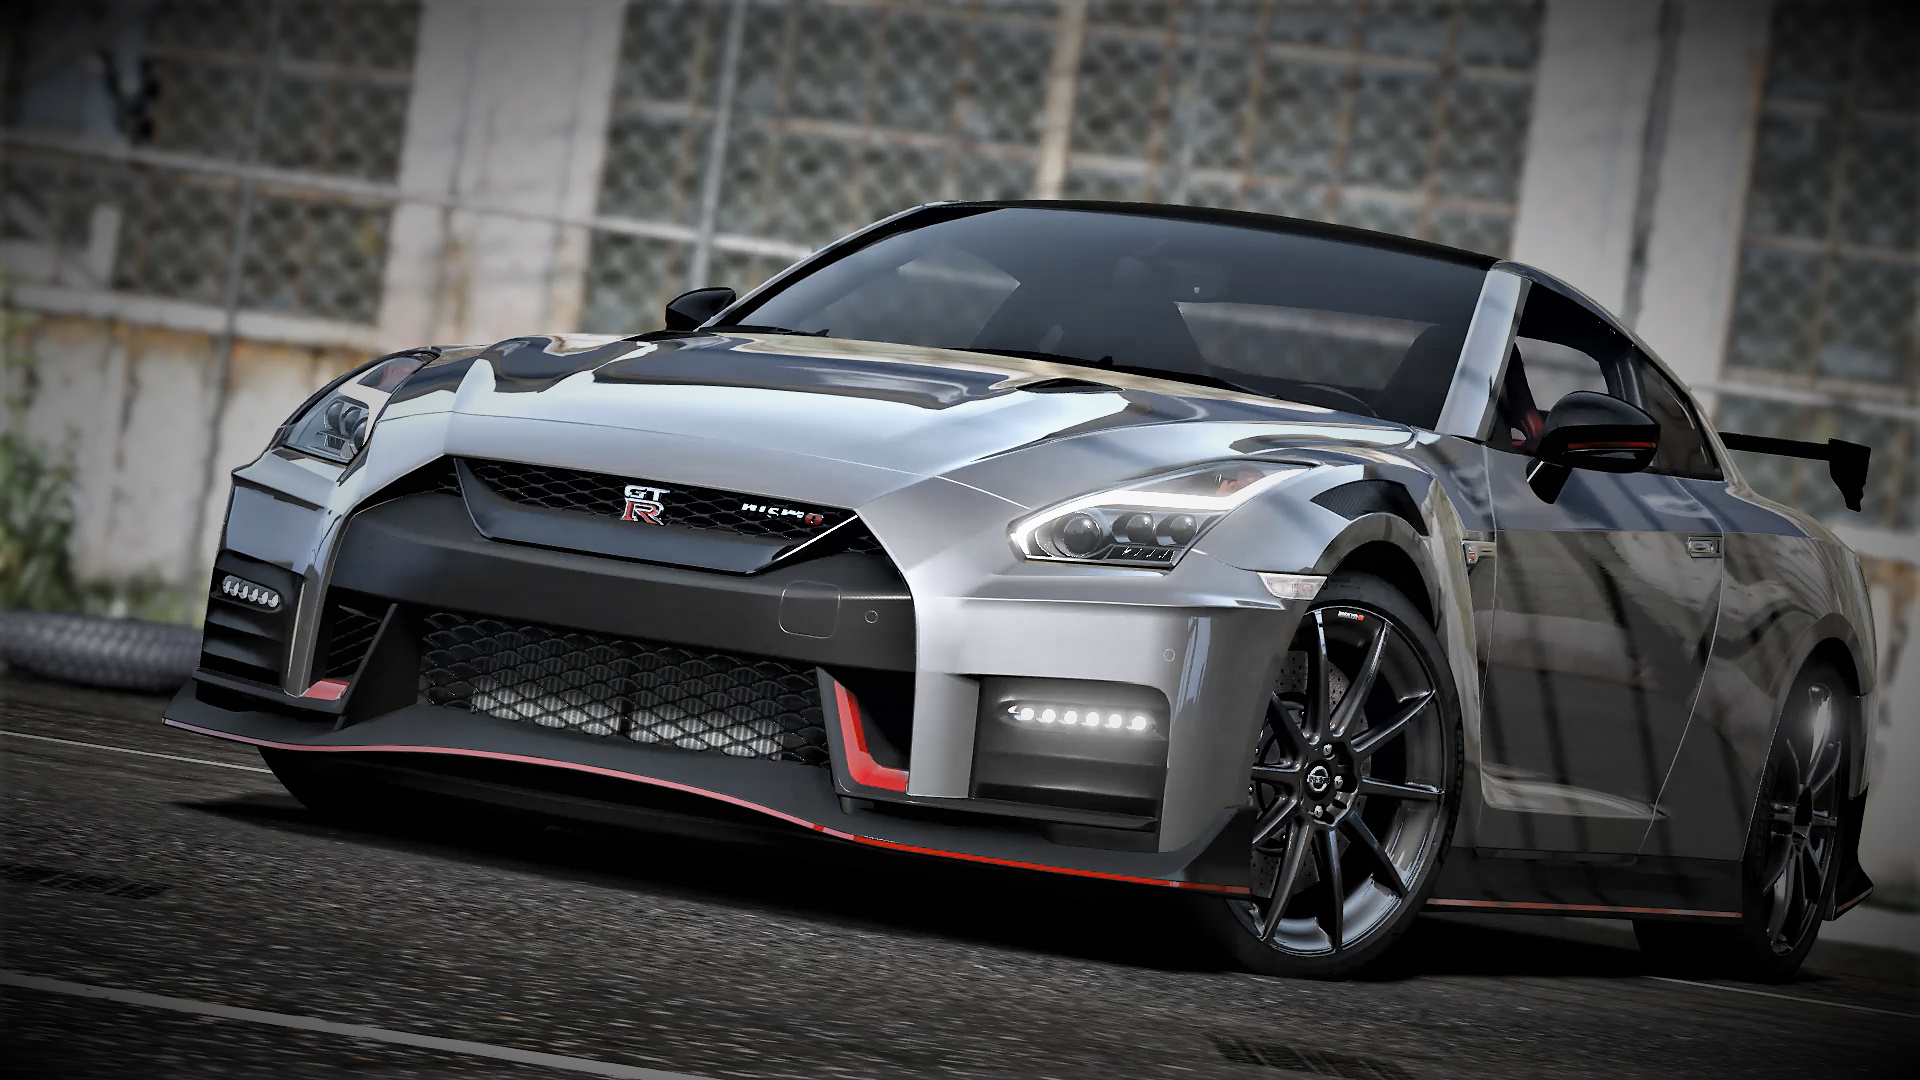 2020 Nissan Gt R Release Date and Concept